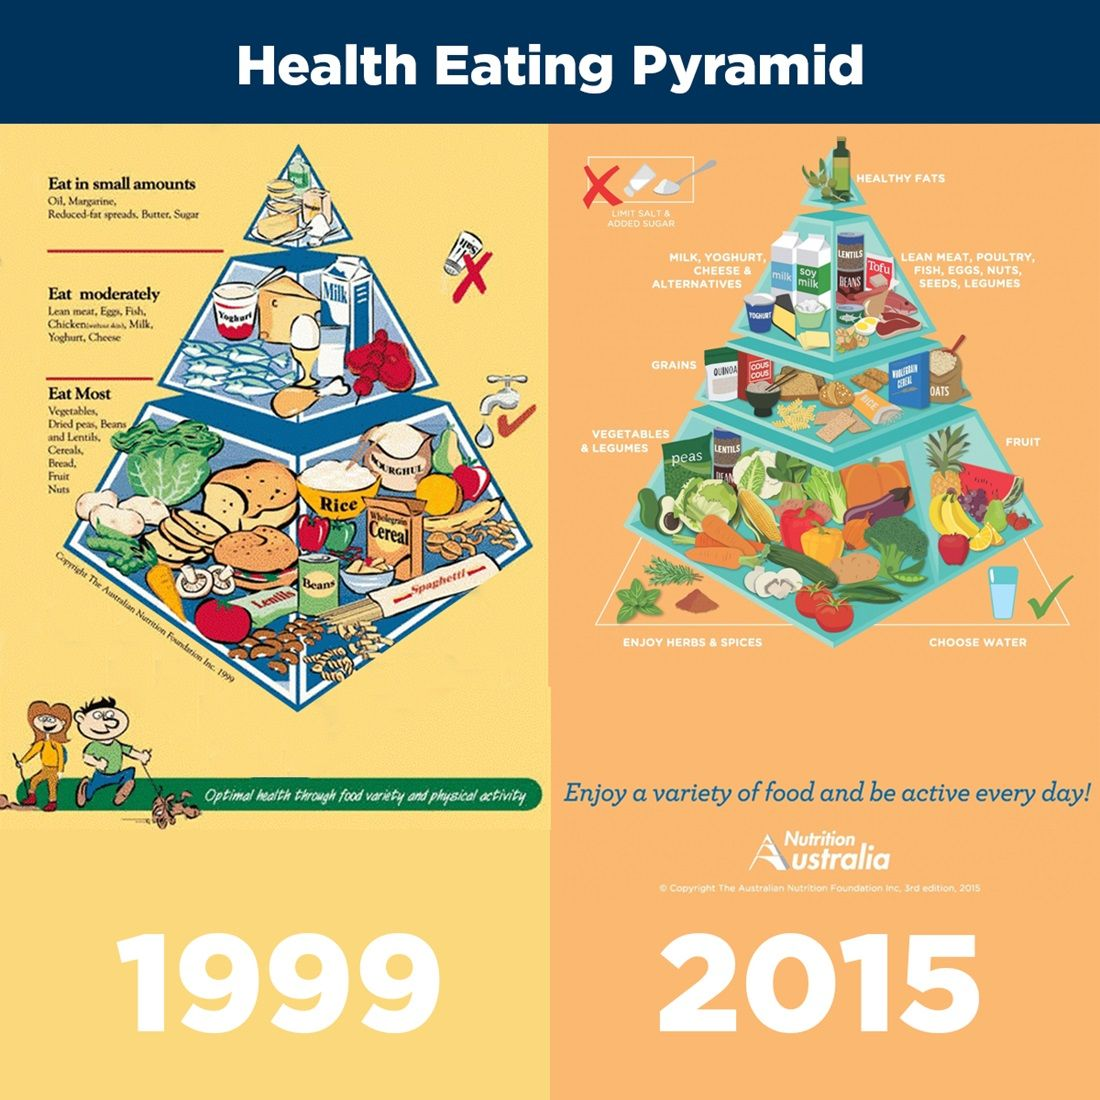 health eating pyramid 2015 to 1999 Healthy eating